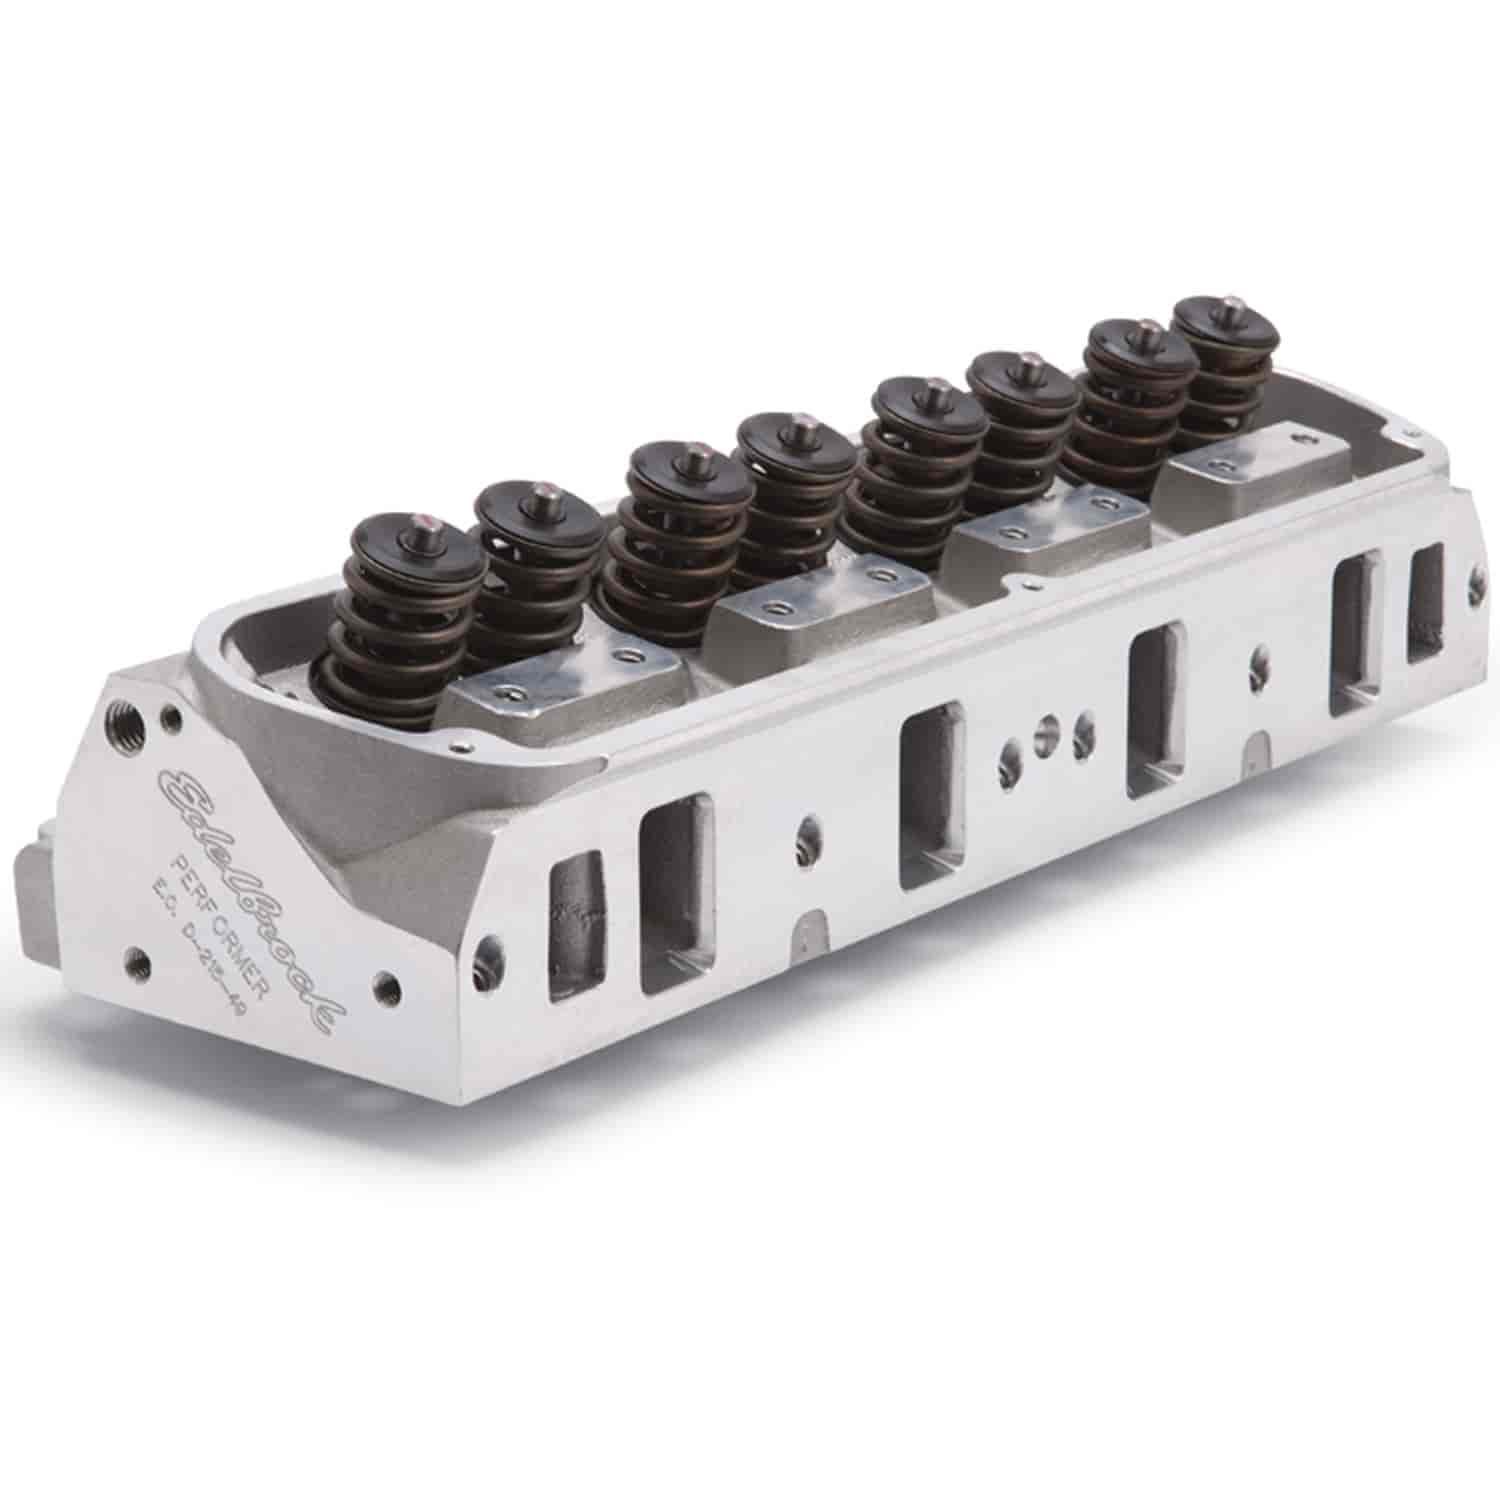 Edelbrock 60379 - Edelbrock Performer Cylinder Heads For 5.0/5.8L Ford